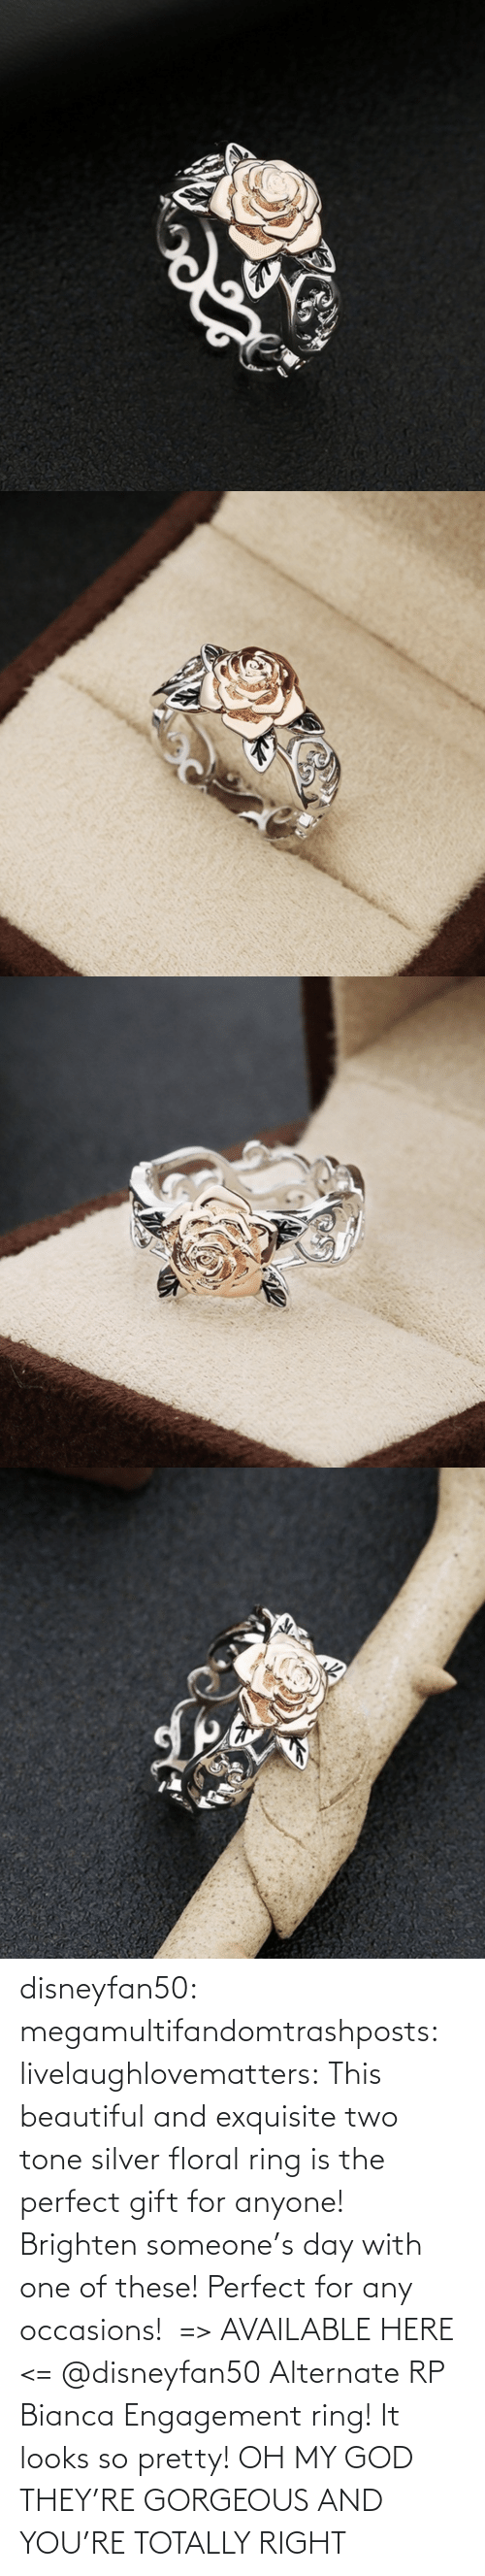 ring: disneyfan50:  megamultifandomtrashposts: livelaughlovematters:  This beautiful and exquisite two tone silver floral ring is the perfect gift for anyone! Brighten someone's day with one of these! Perfect for any occasions!  => AVAILABLE HERE <=    @disneyfan50 Alternate RP Bianca Engagement ring! It looks so pretty!  OH MY GOD THEY'RE GORGEOUS AND YOU'RE TOTALLY RIGHT